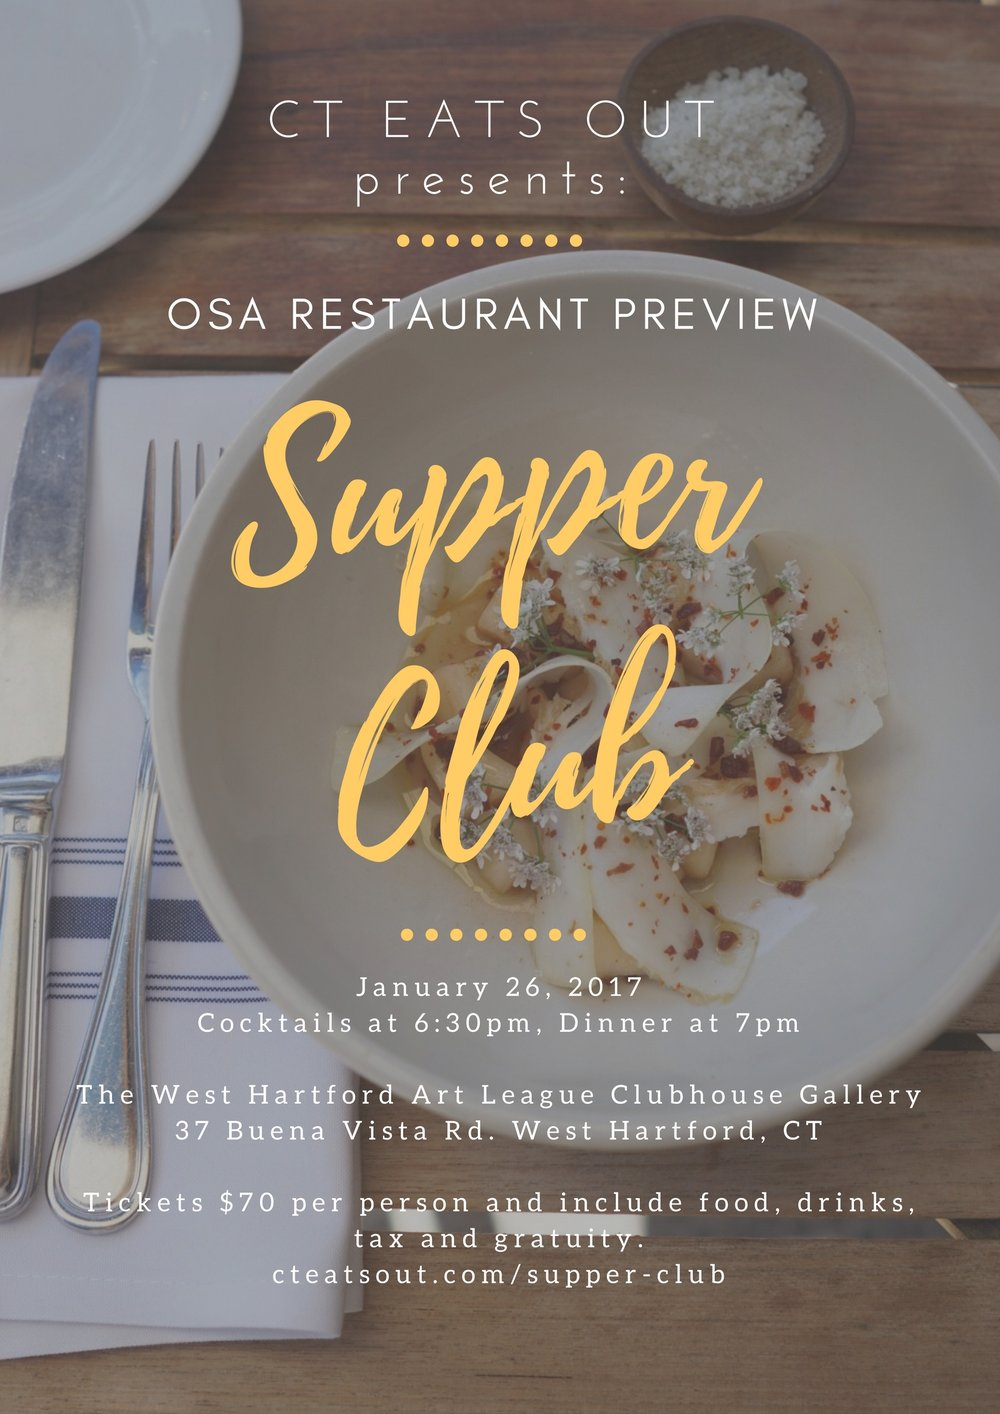 CT Eats Out Supper Club: Osa Restaurant Preview